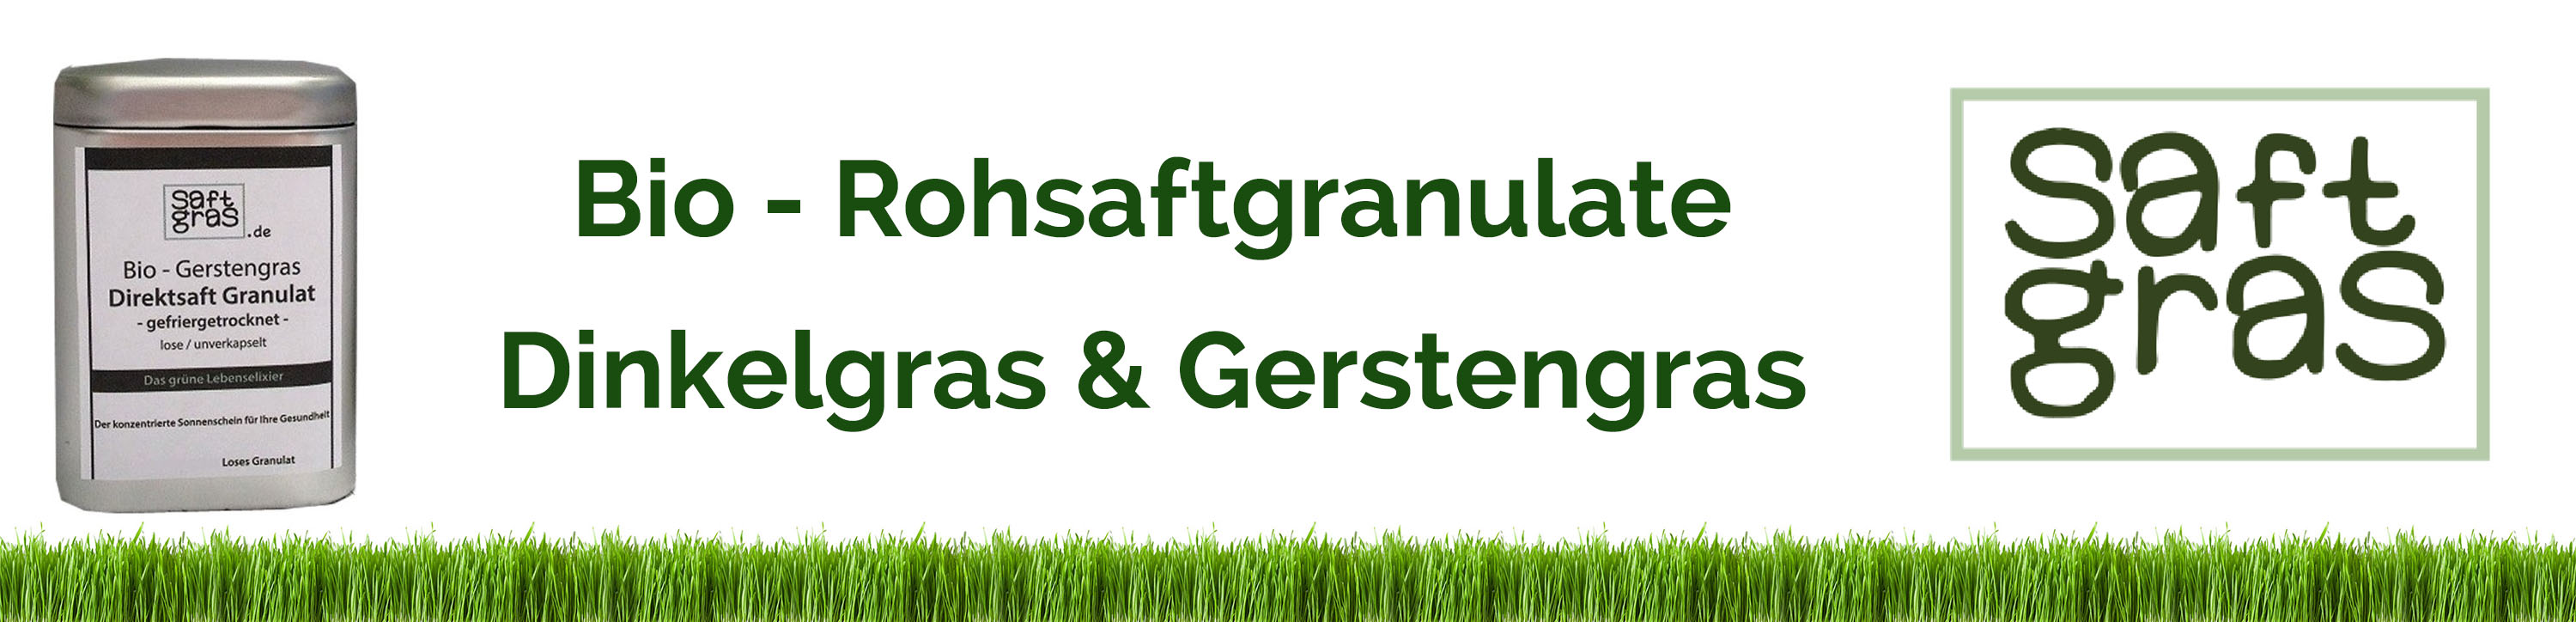 Saftgras Rohsaftgranulate Gerstensaft Dinkelsaft